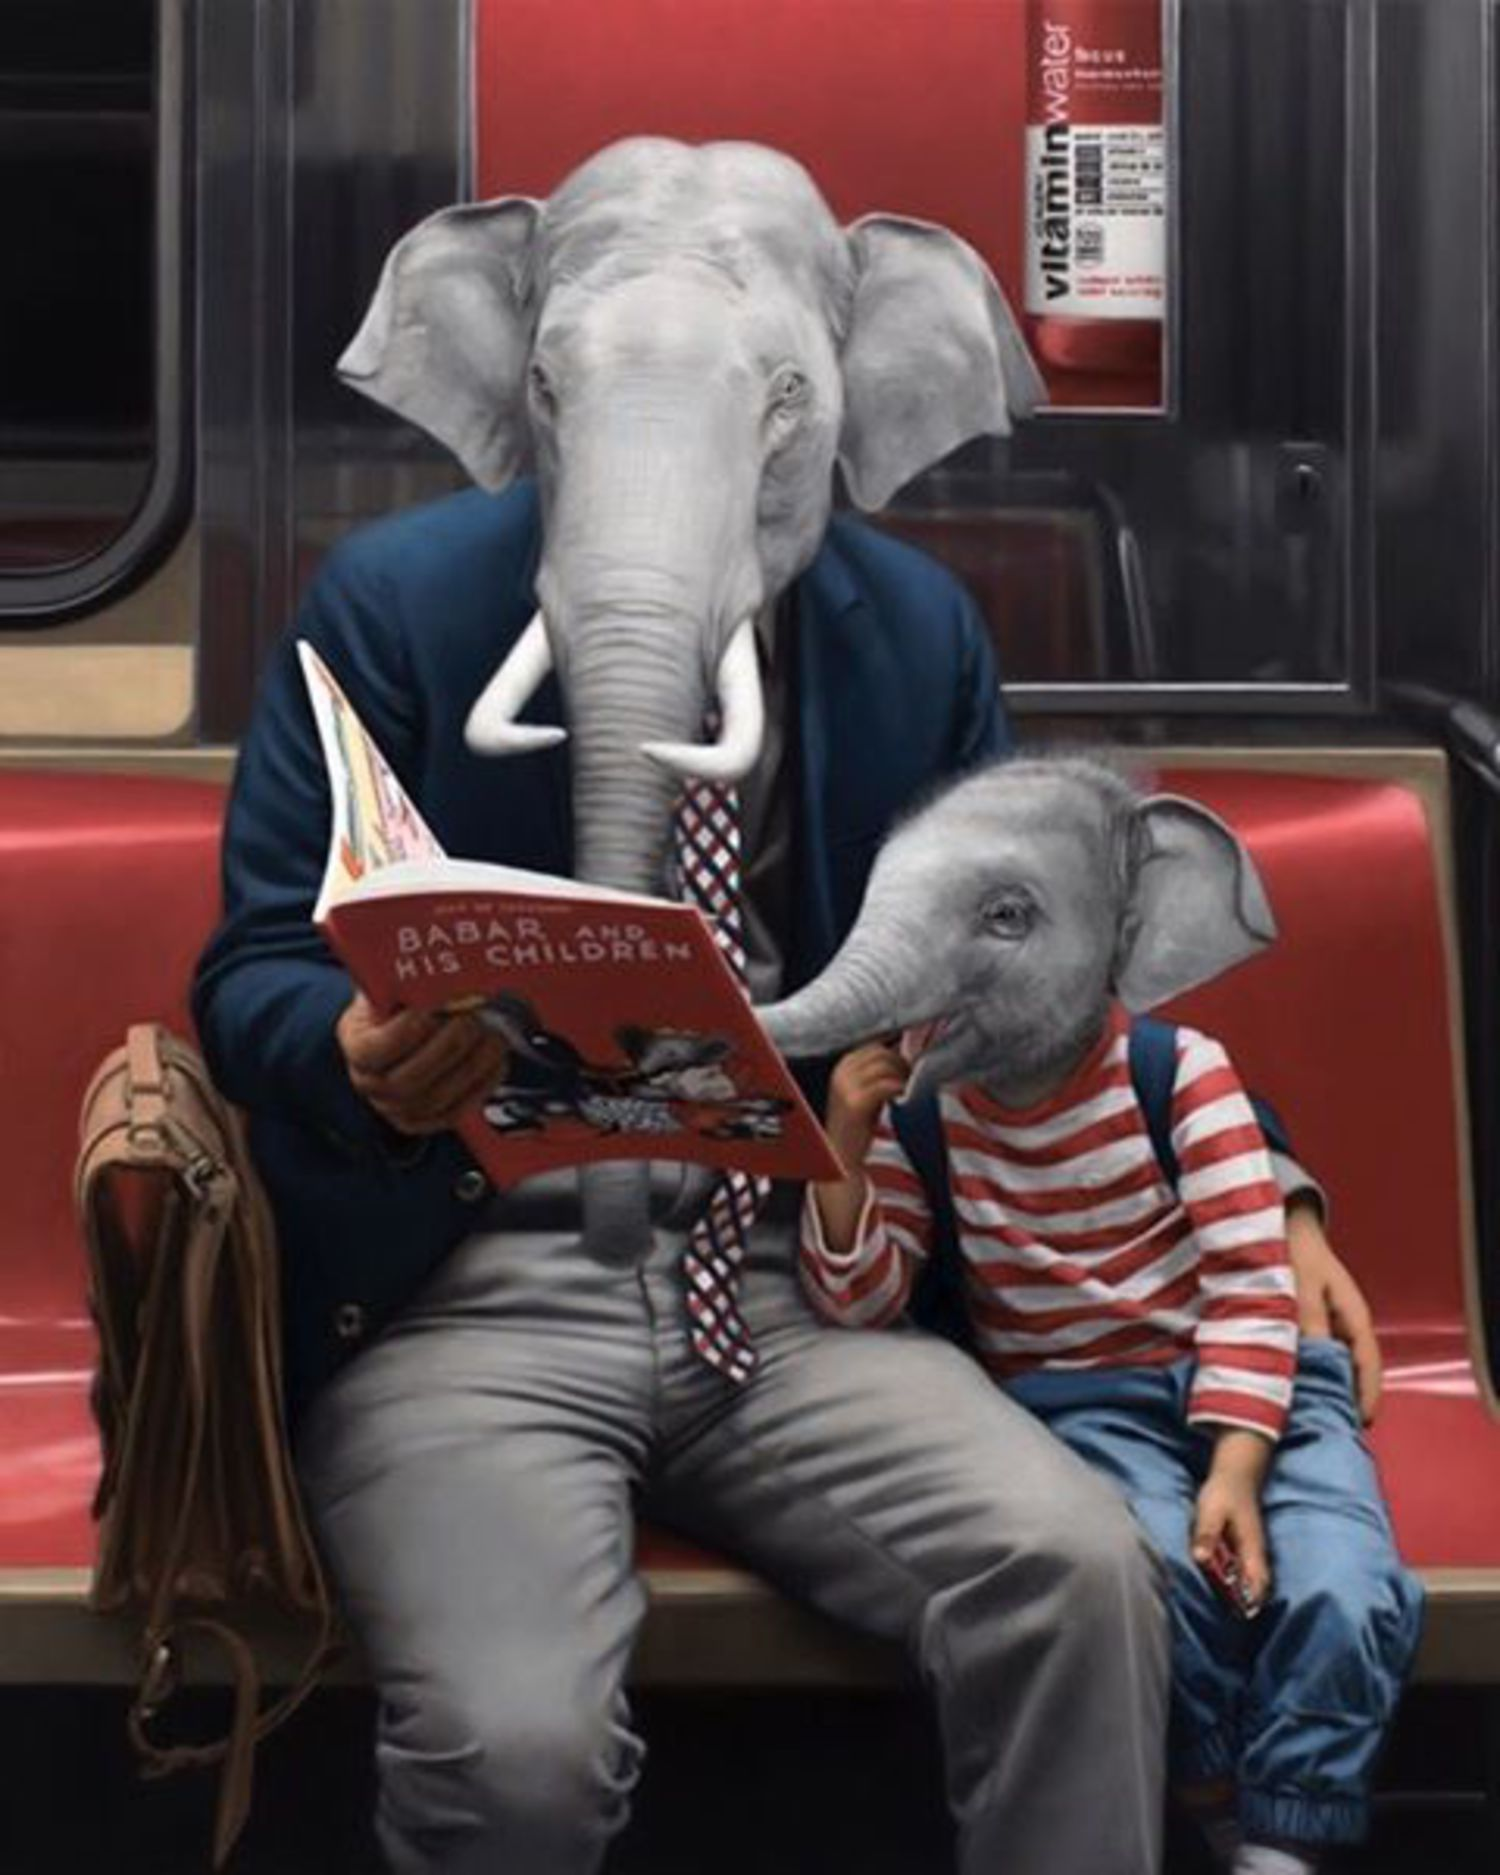 I've been watching a lot of videos of elephants on Facebook lately. They are kind of amazing. This new oil painting was inspired by memories of my parents reading Babar to me when I was a kid. Currently on view at UNDERGROUND through May 21st at Thinkspace Gallery (@thinkspace_art) in Los Angeles. The show can also be enjoyed via their website at www.thinkspacegallery.com.  #thinkspacegallery #thinkspacefamily #matthewgrabelsky #underground #subway #elephants #babar #oilpainting #painting